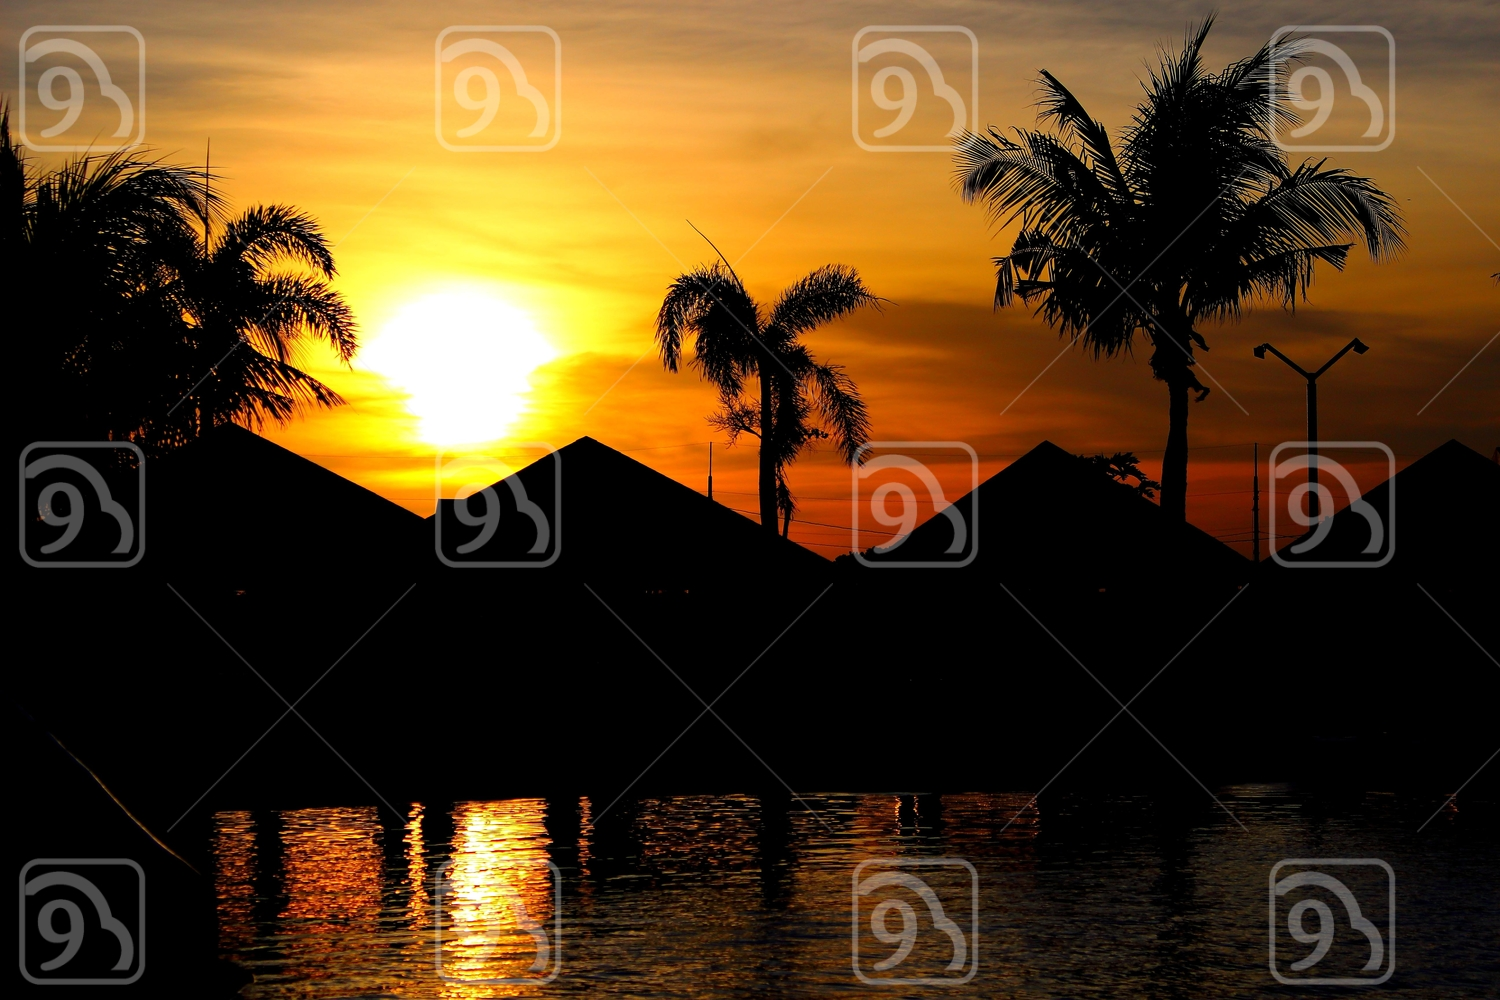 Sunset with silhouettes of huts and palm trees